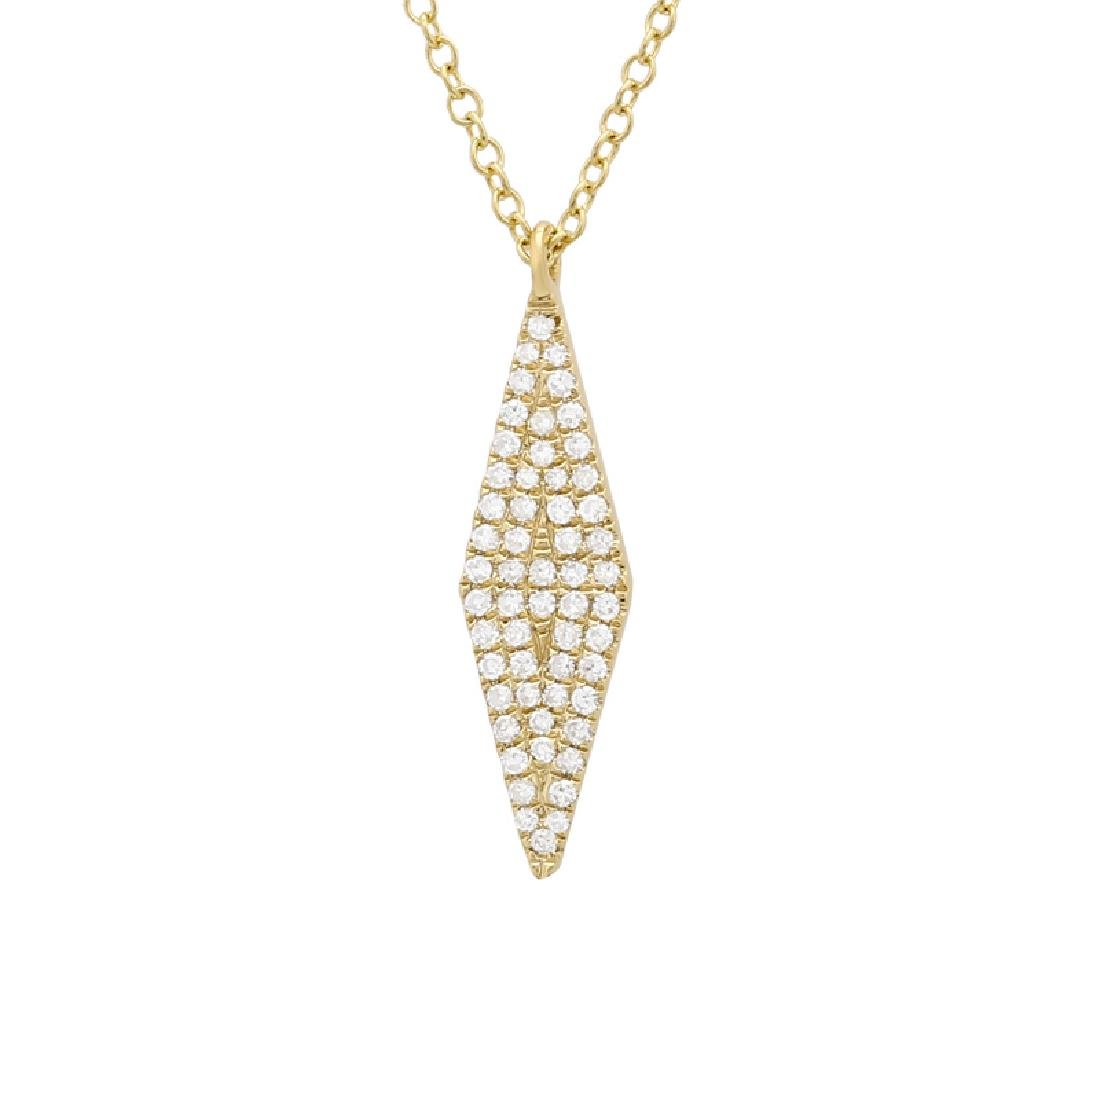 14KT Yellow Gold Diamond Pendant With Chain - 2